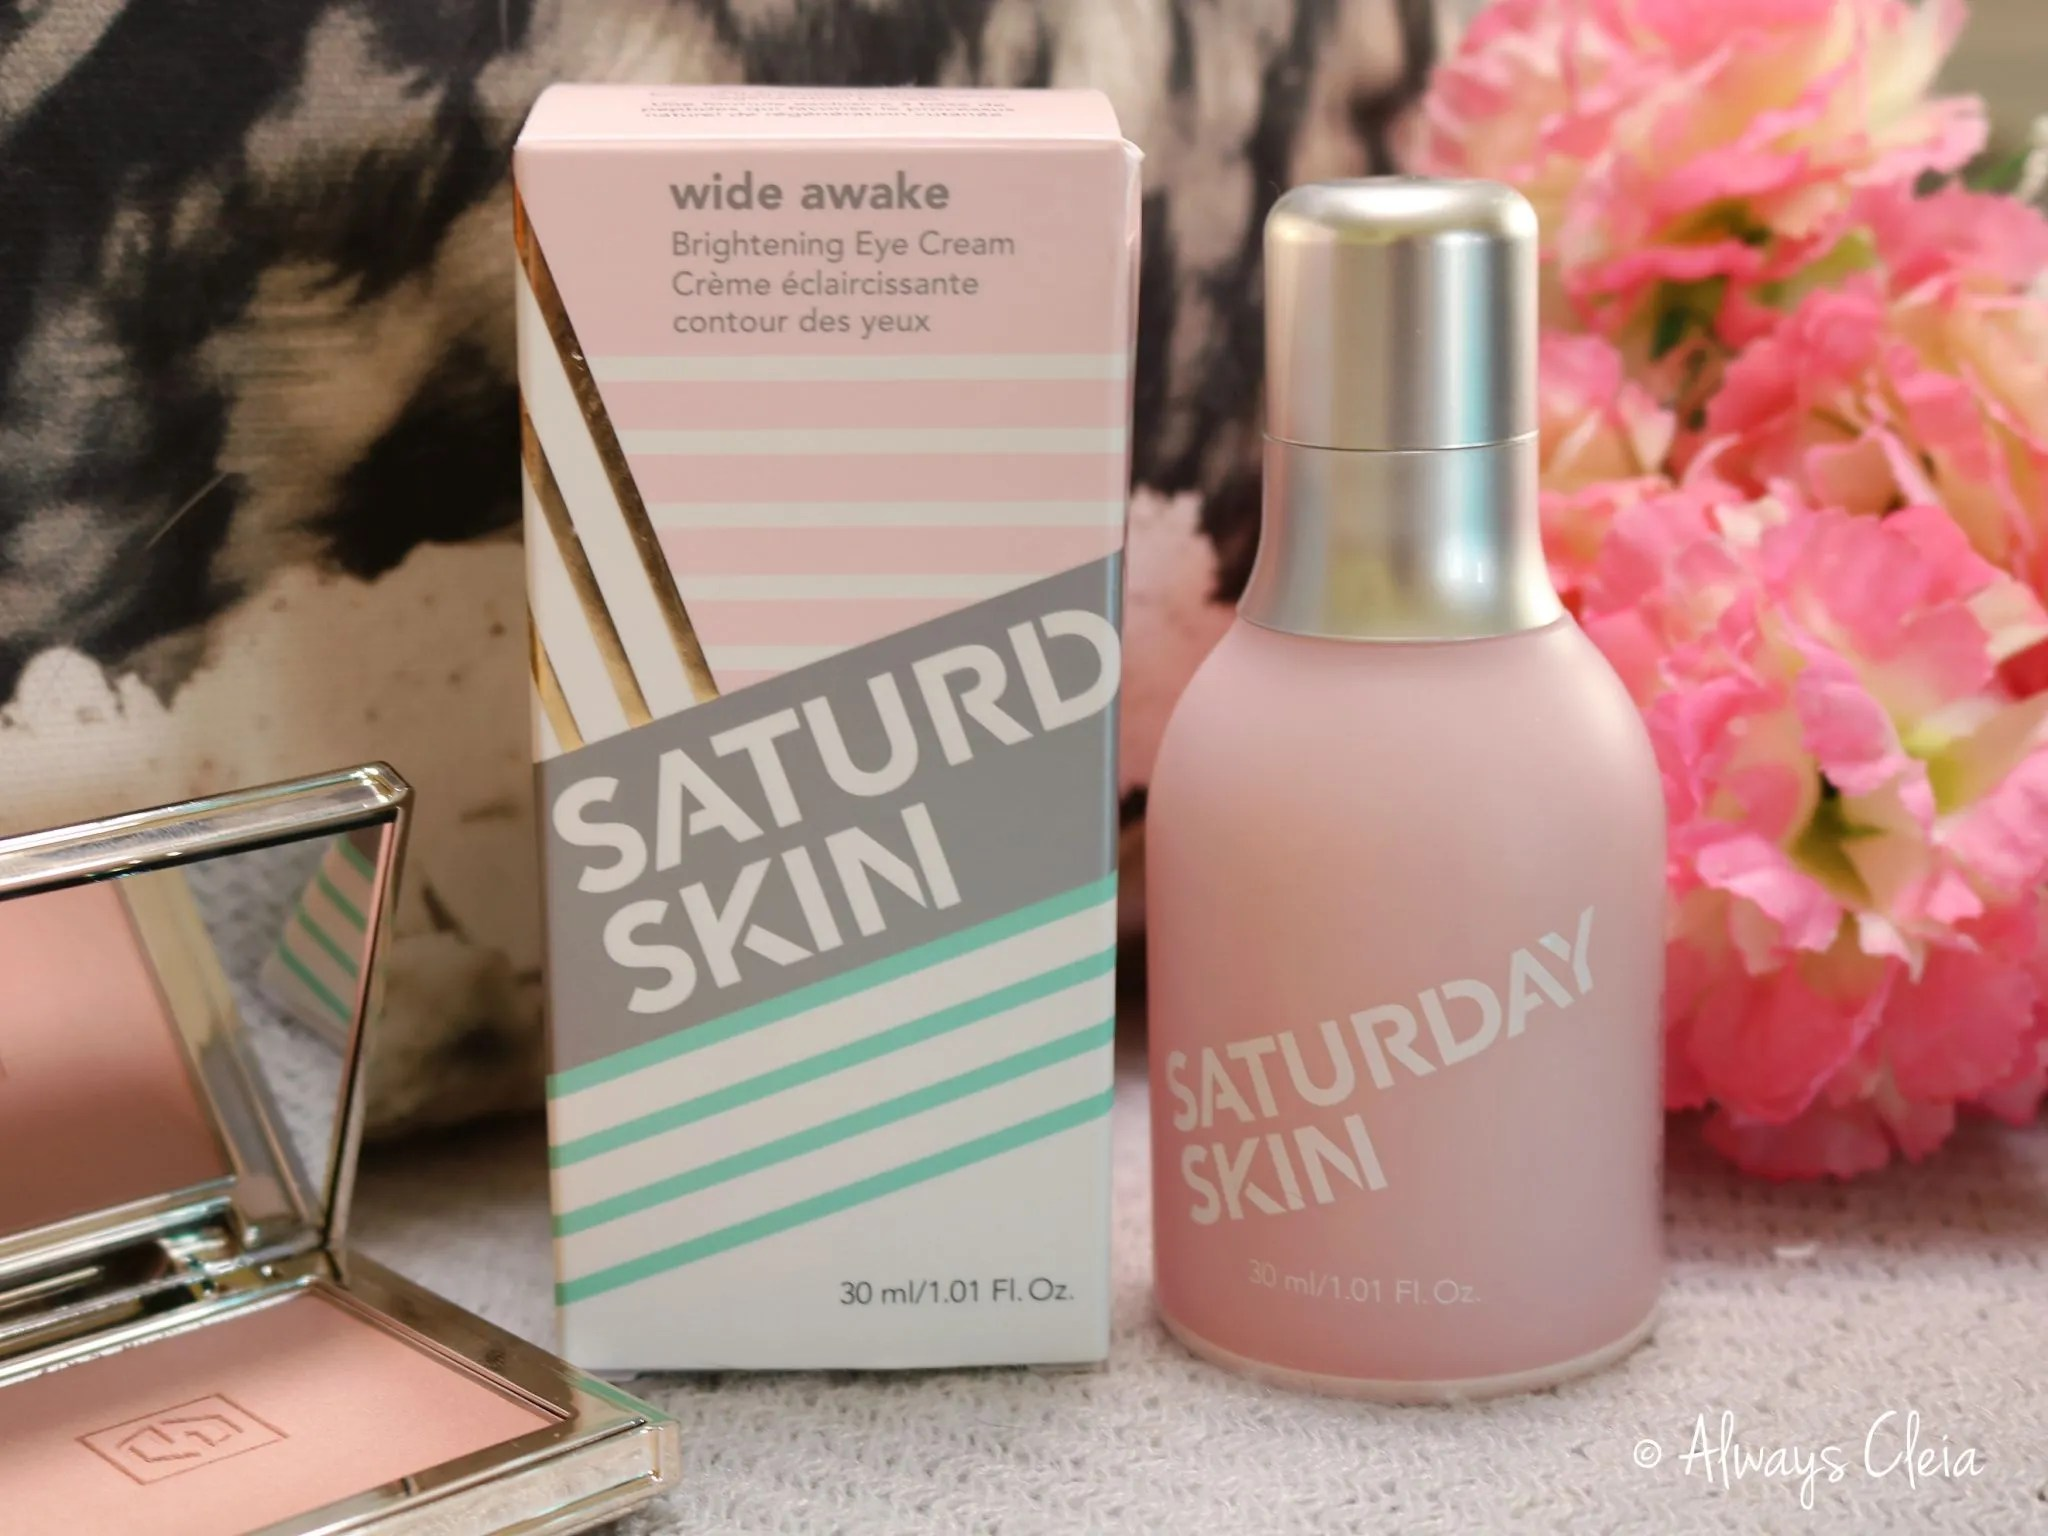 Wide Awake Brightening Eye Cream Saturday Skin